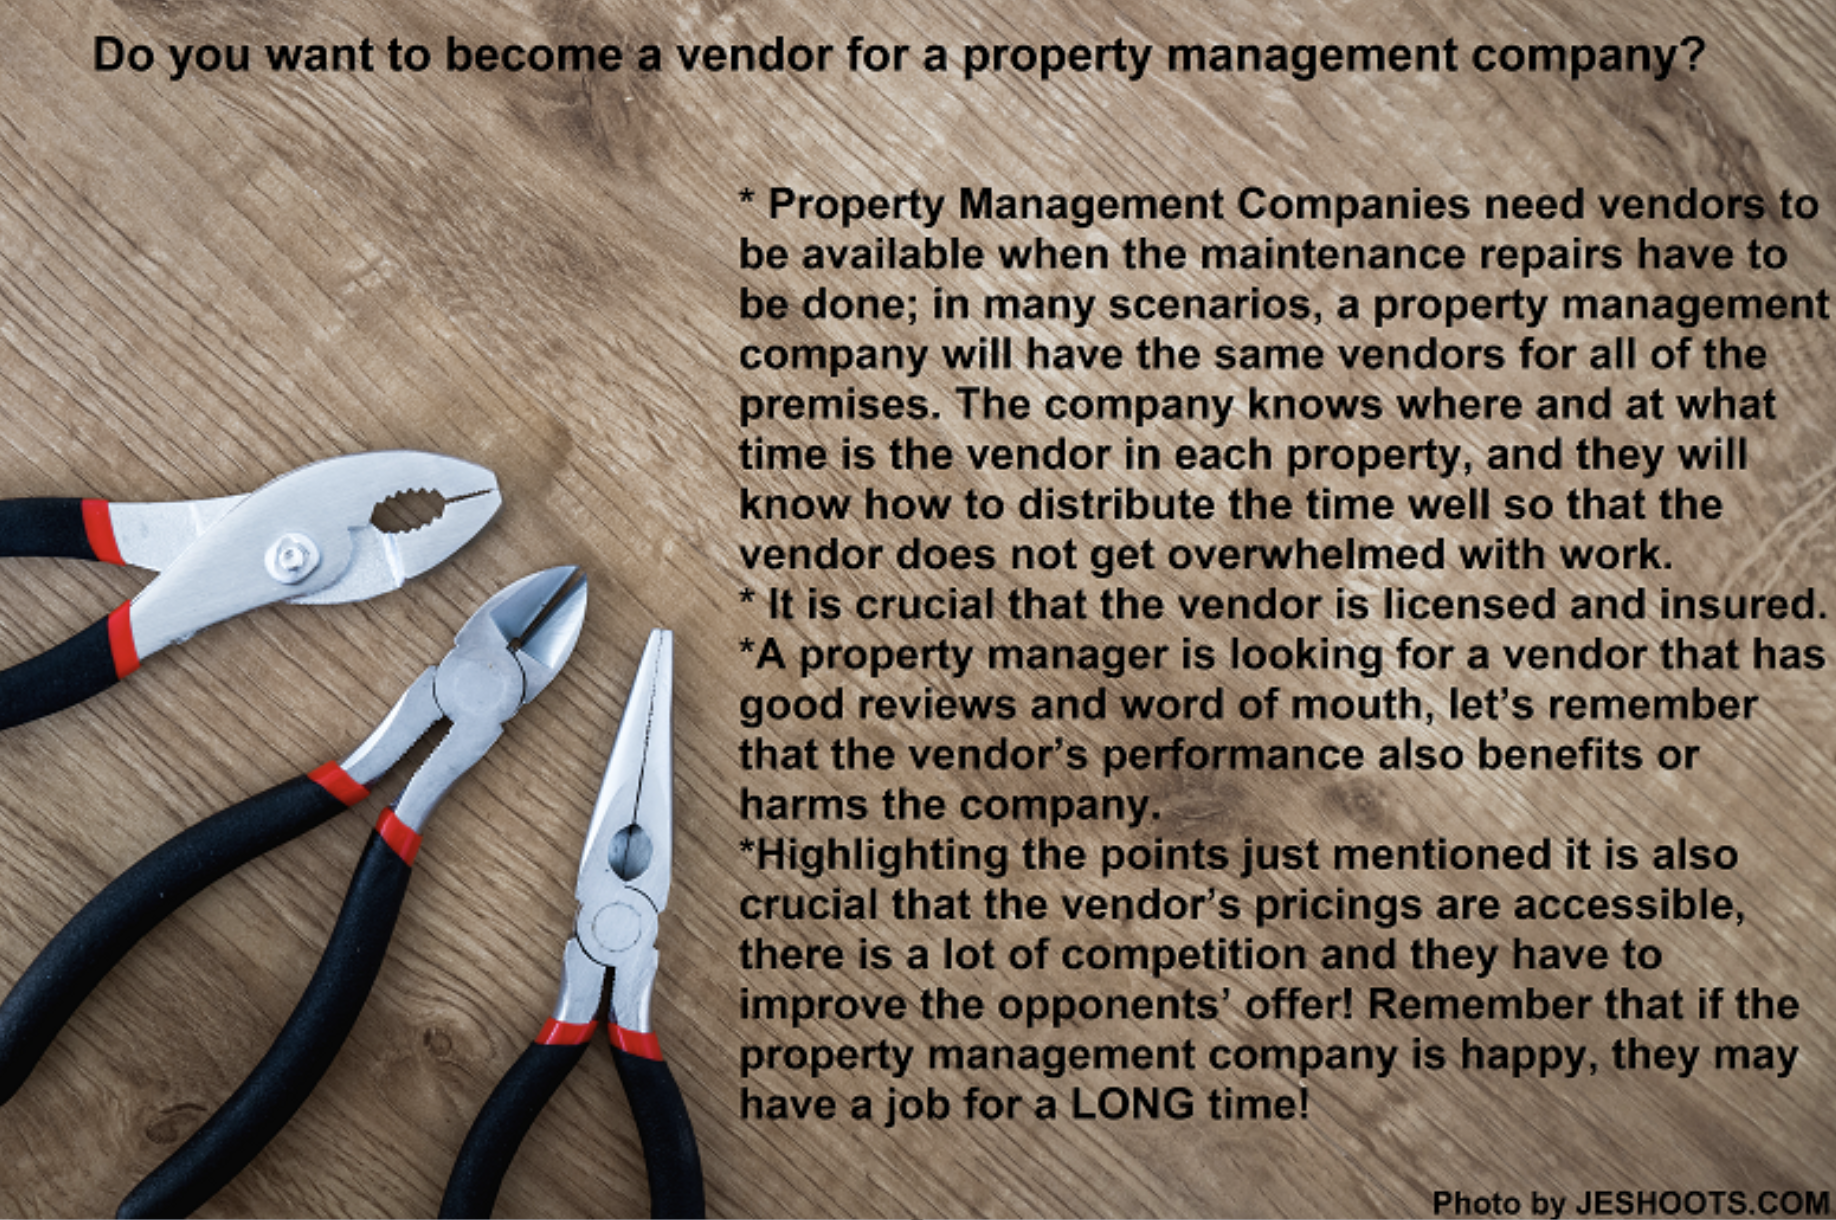 Do you want to become a vendor for a property management company?